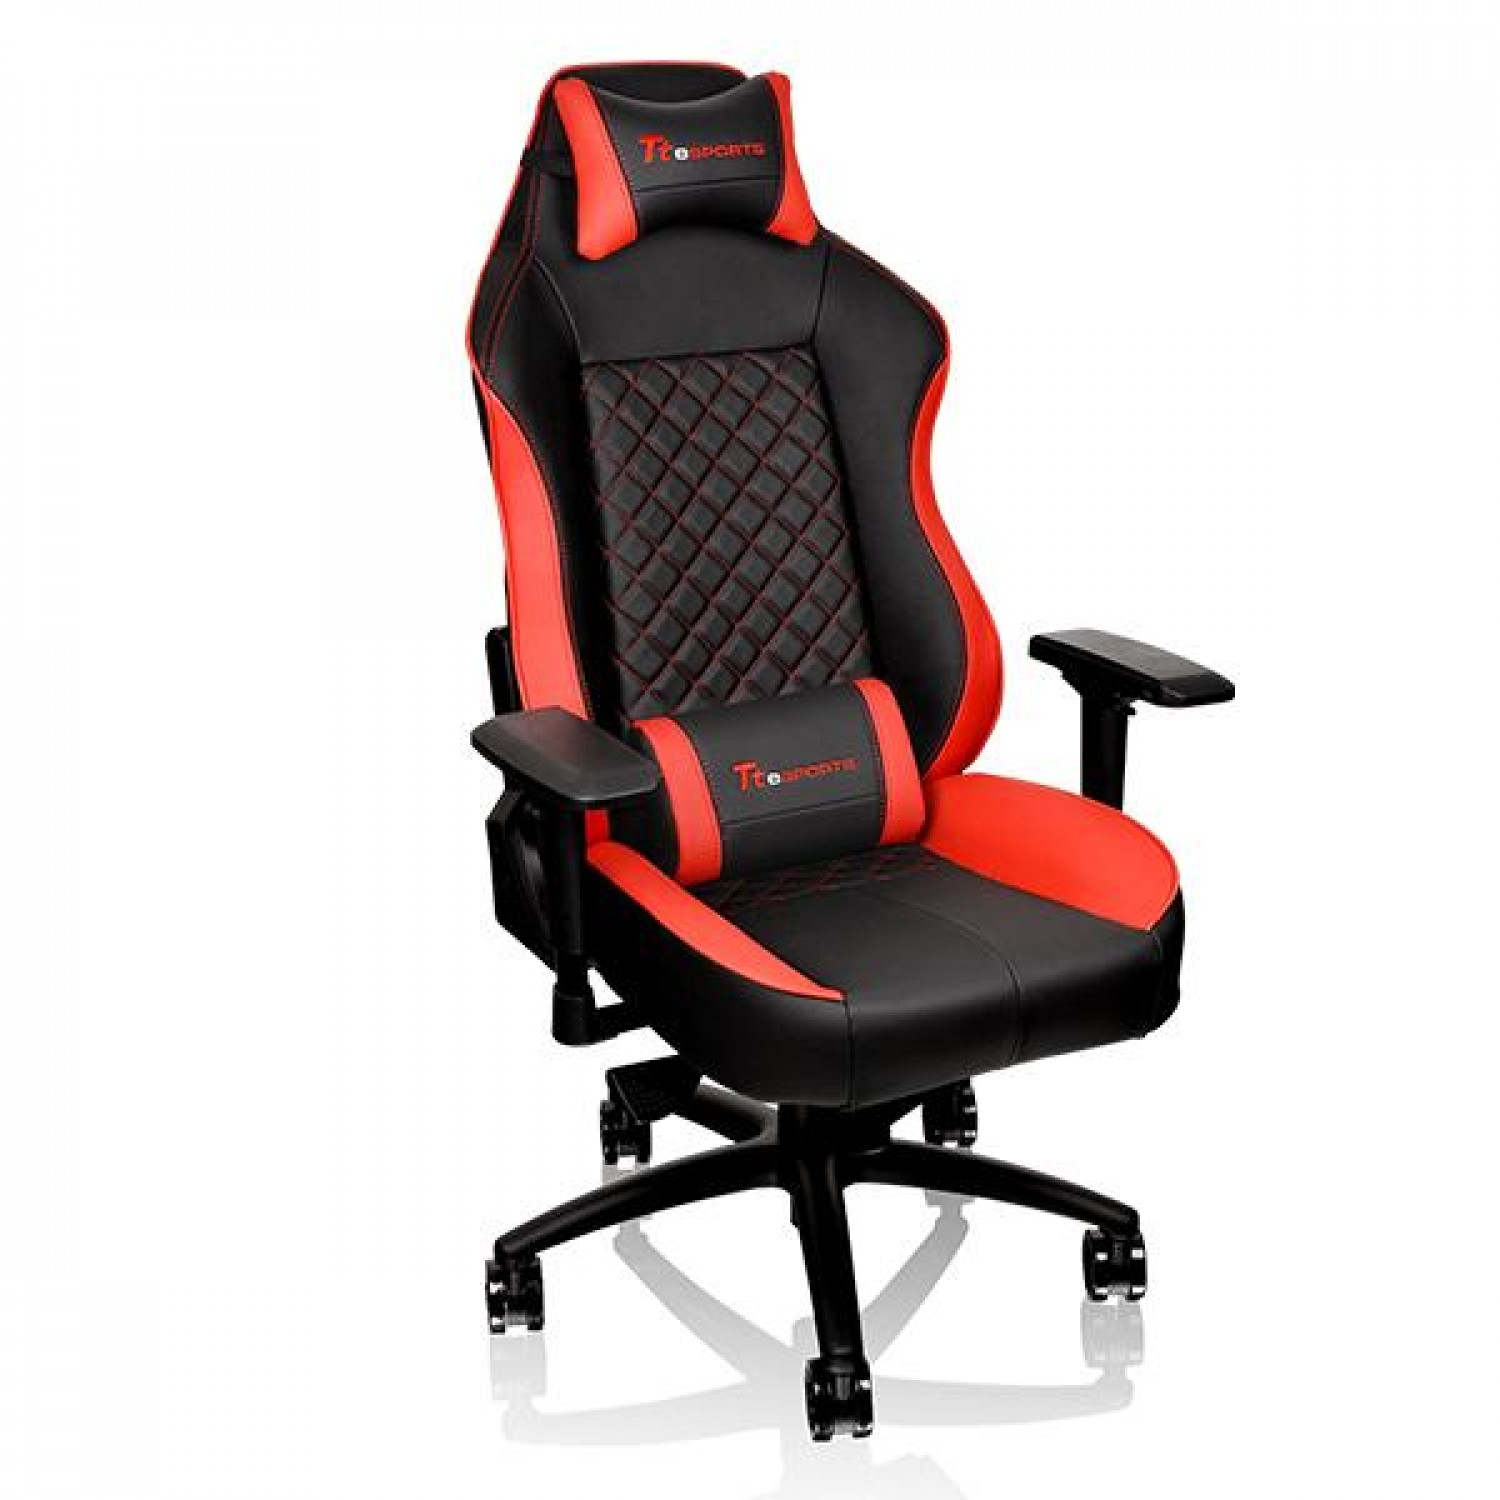 SILLA GAMER TT ESPORTS GTC 500 BLACK/RED